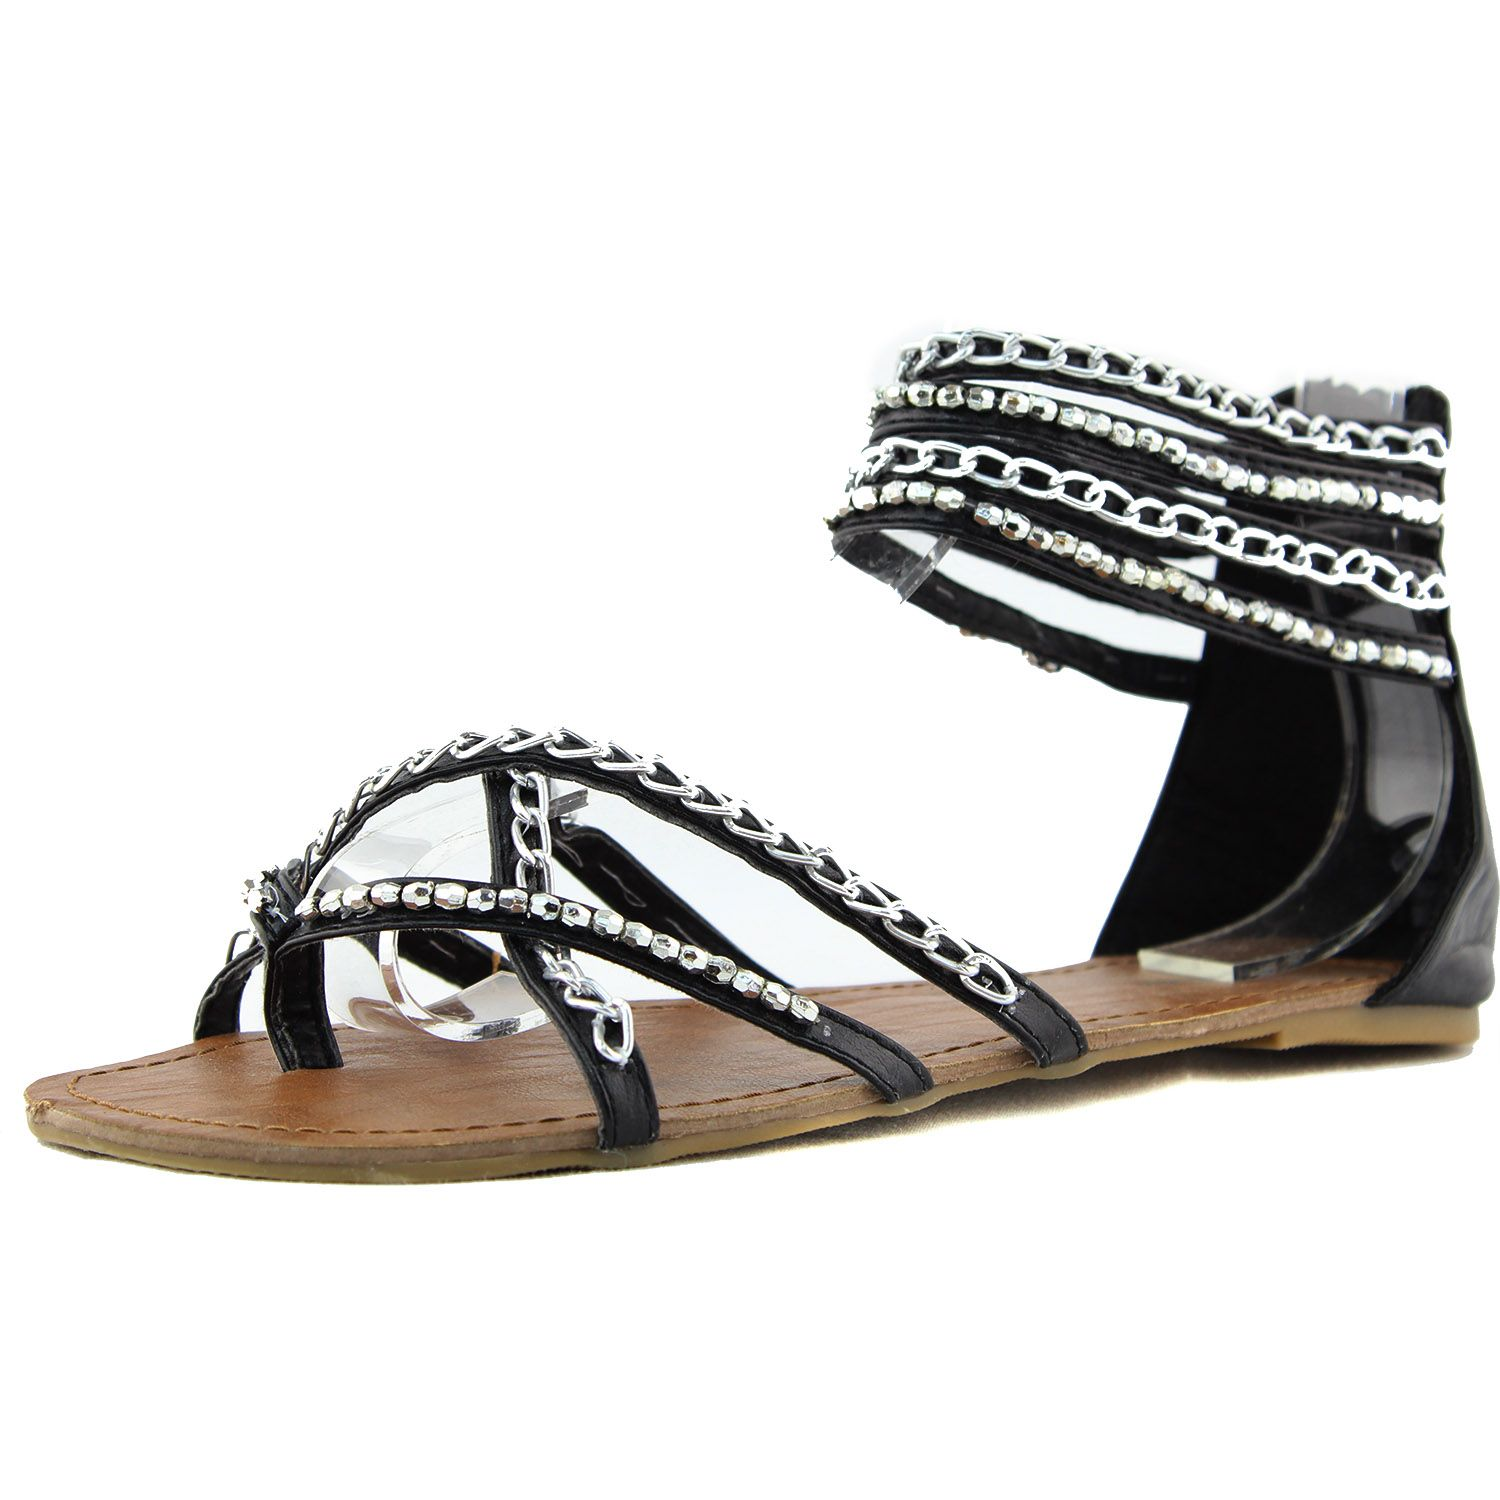 Save 10% + Free Shipping Offer *   Coupon Code: Pinterest10 Material: Man Made Material True to size Gladiator Flats Brand: Top Moda Product Code: Bean-25 Black Color Women's Top Moda Bean-25 Black Color Strappy Gladiator Flats